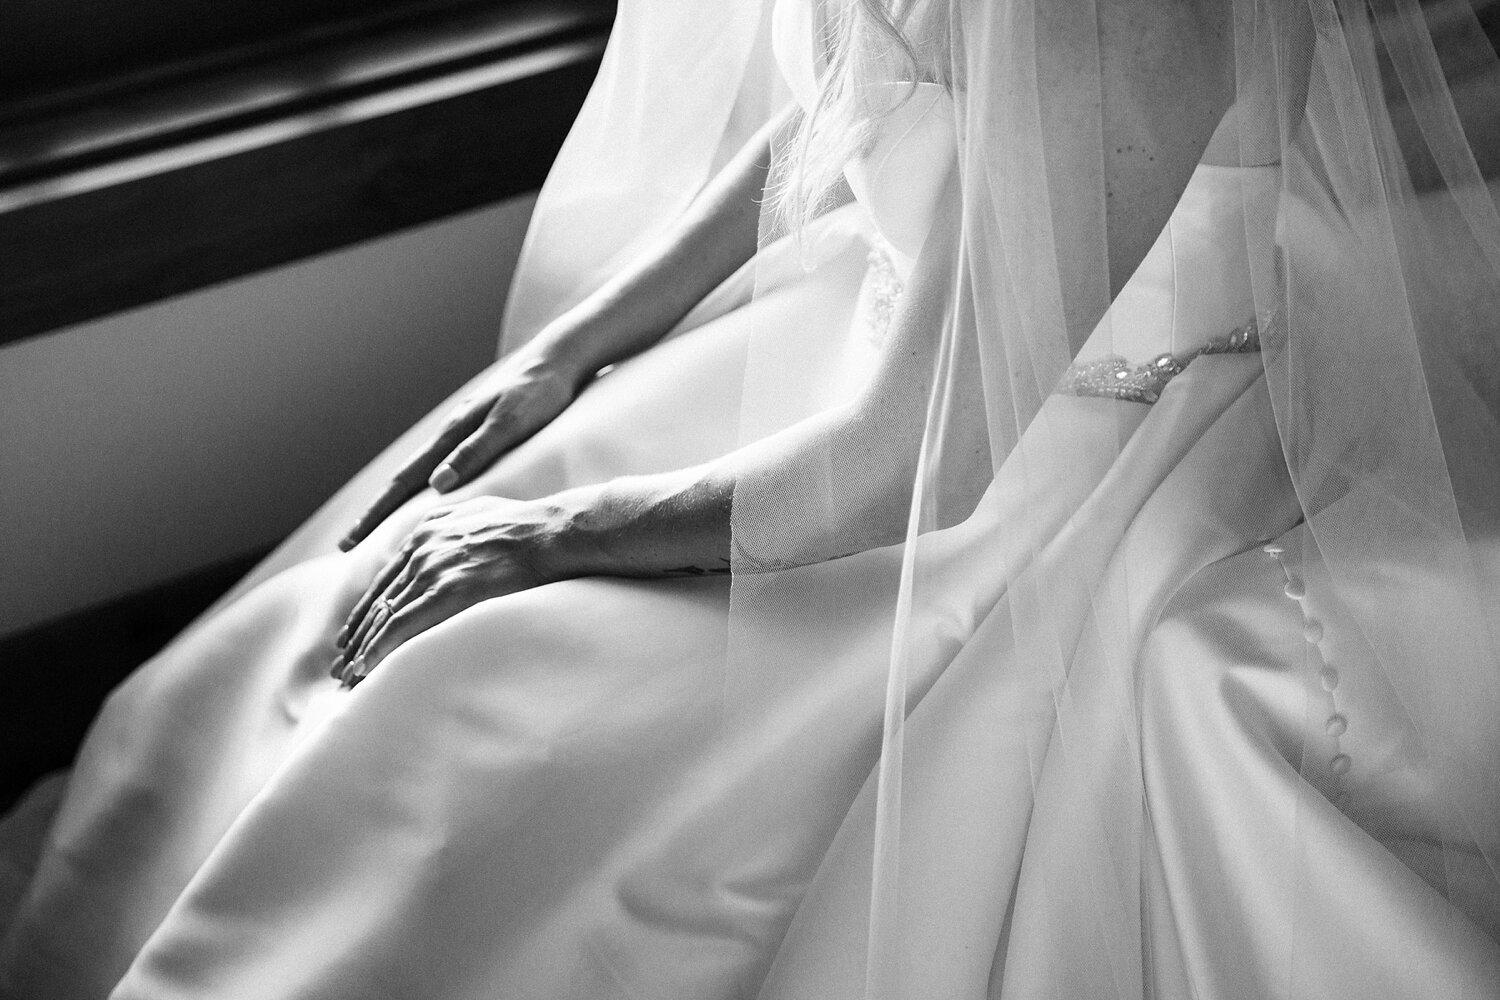 bride's hands rest in her lap on her wedding gown skirt